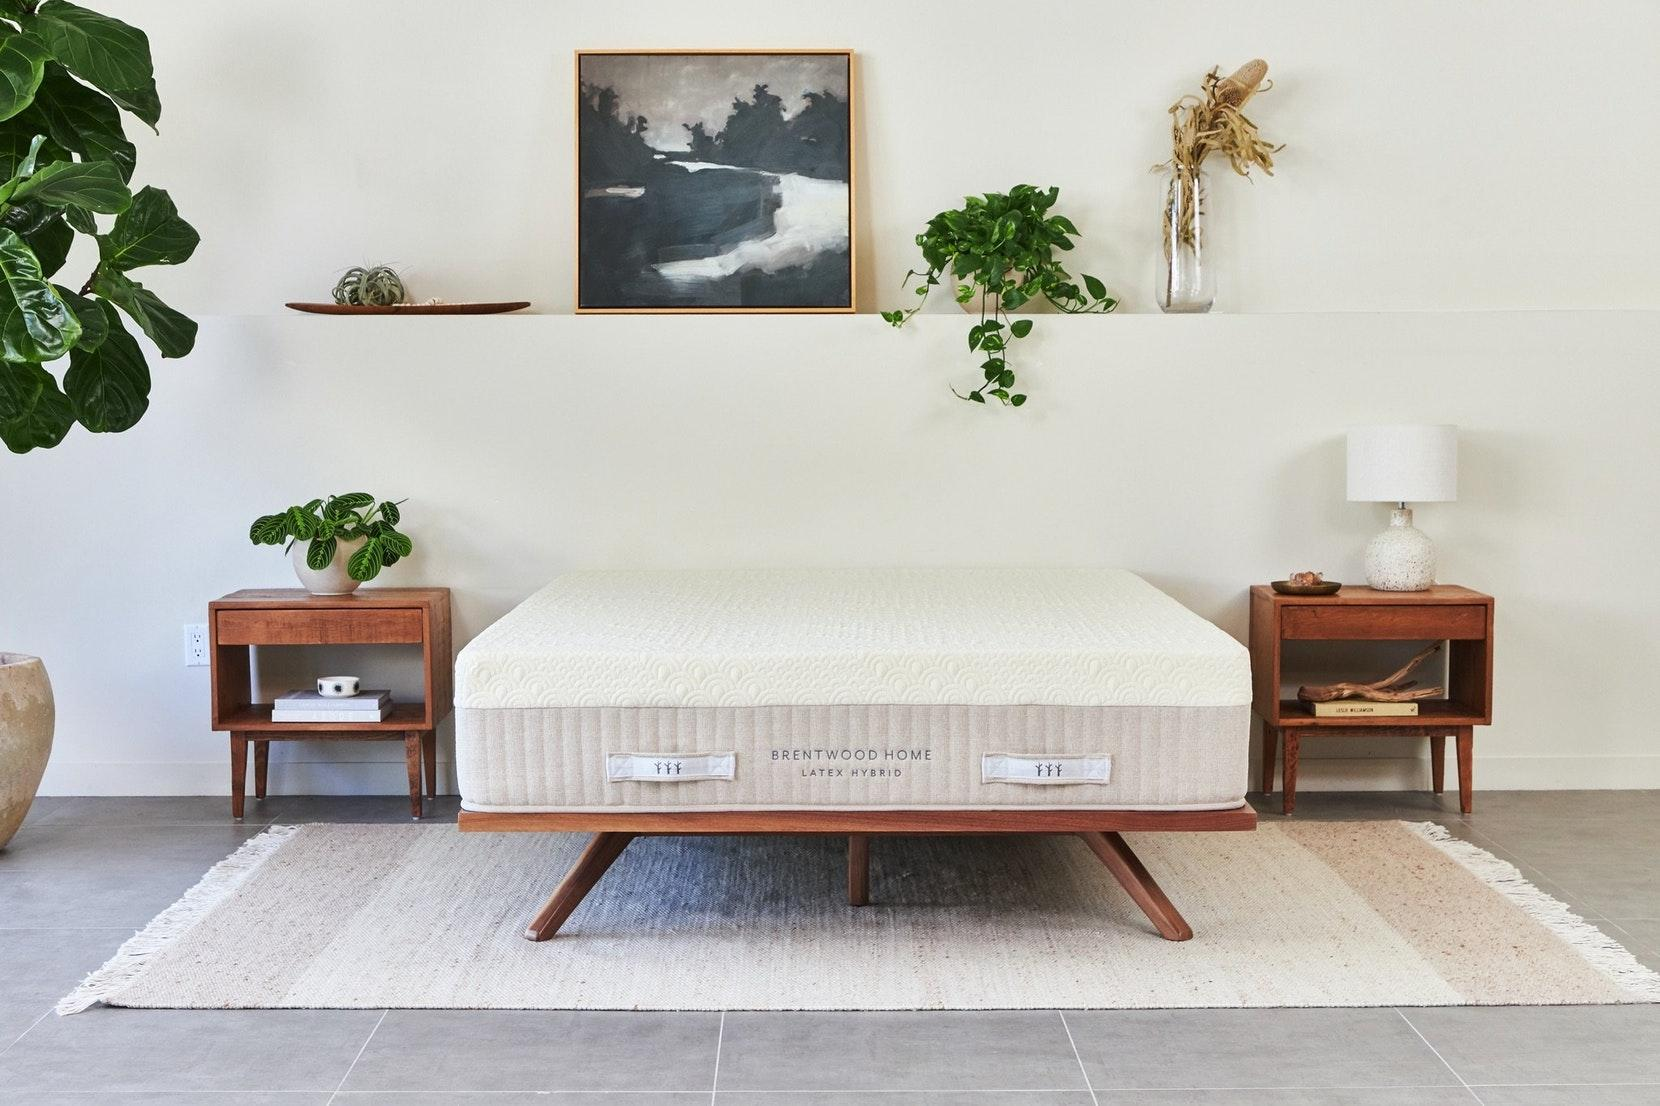 Hybrid Mattress by Brentwood Home 3